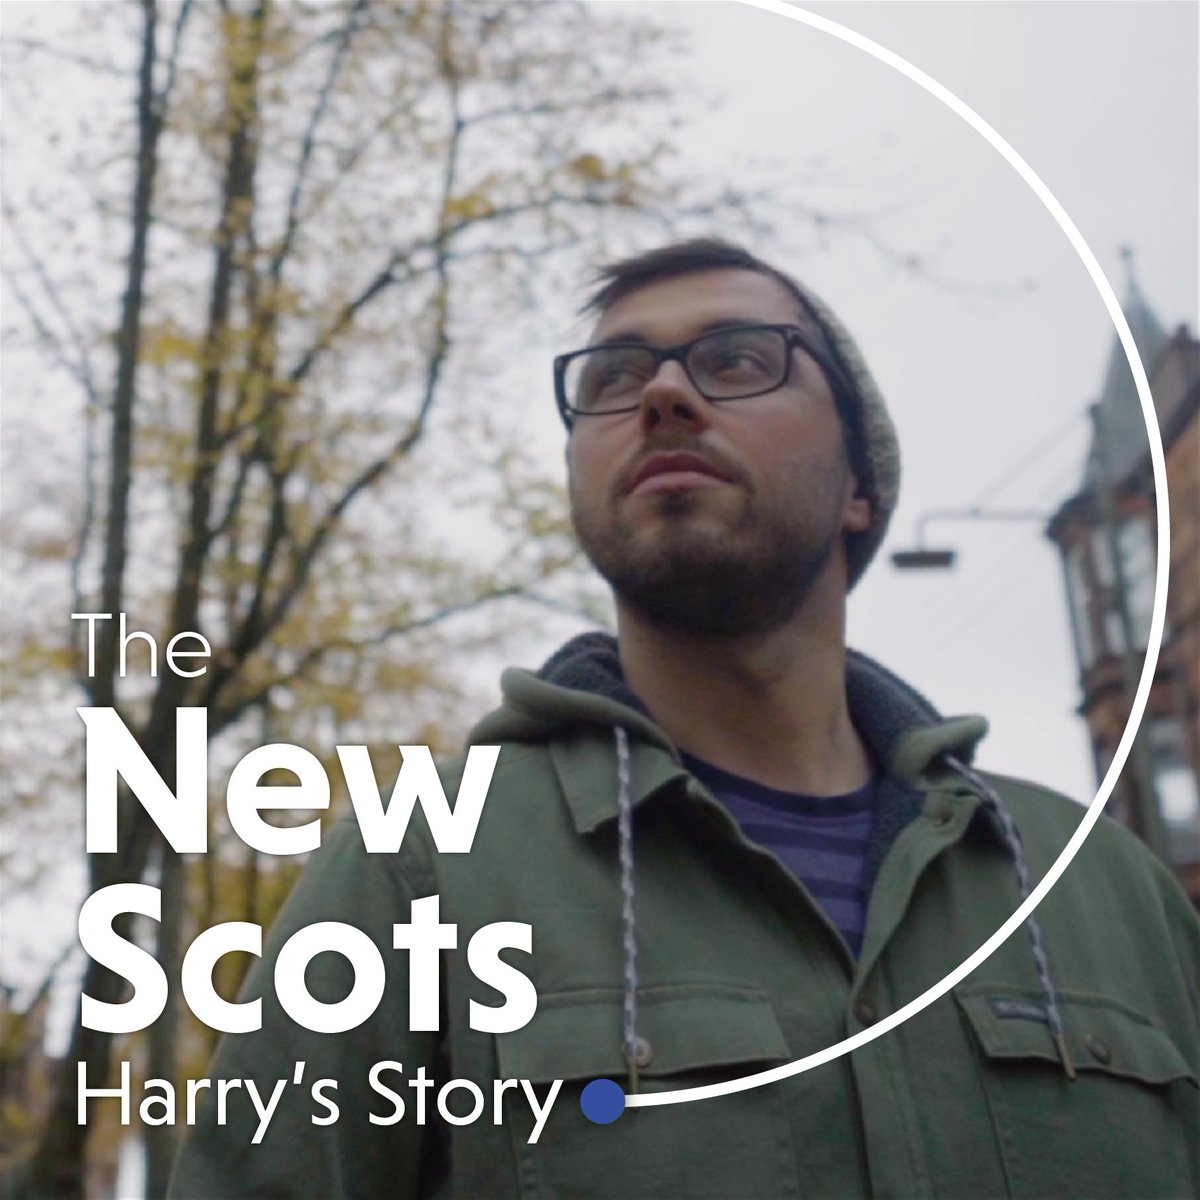 'My way was a wee bit different.' #TheNewScots - streaming now: bbc.in/3051YUS